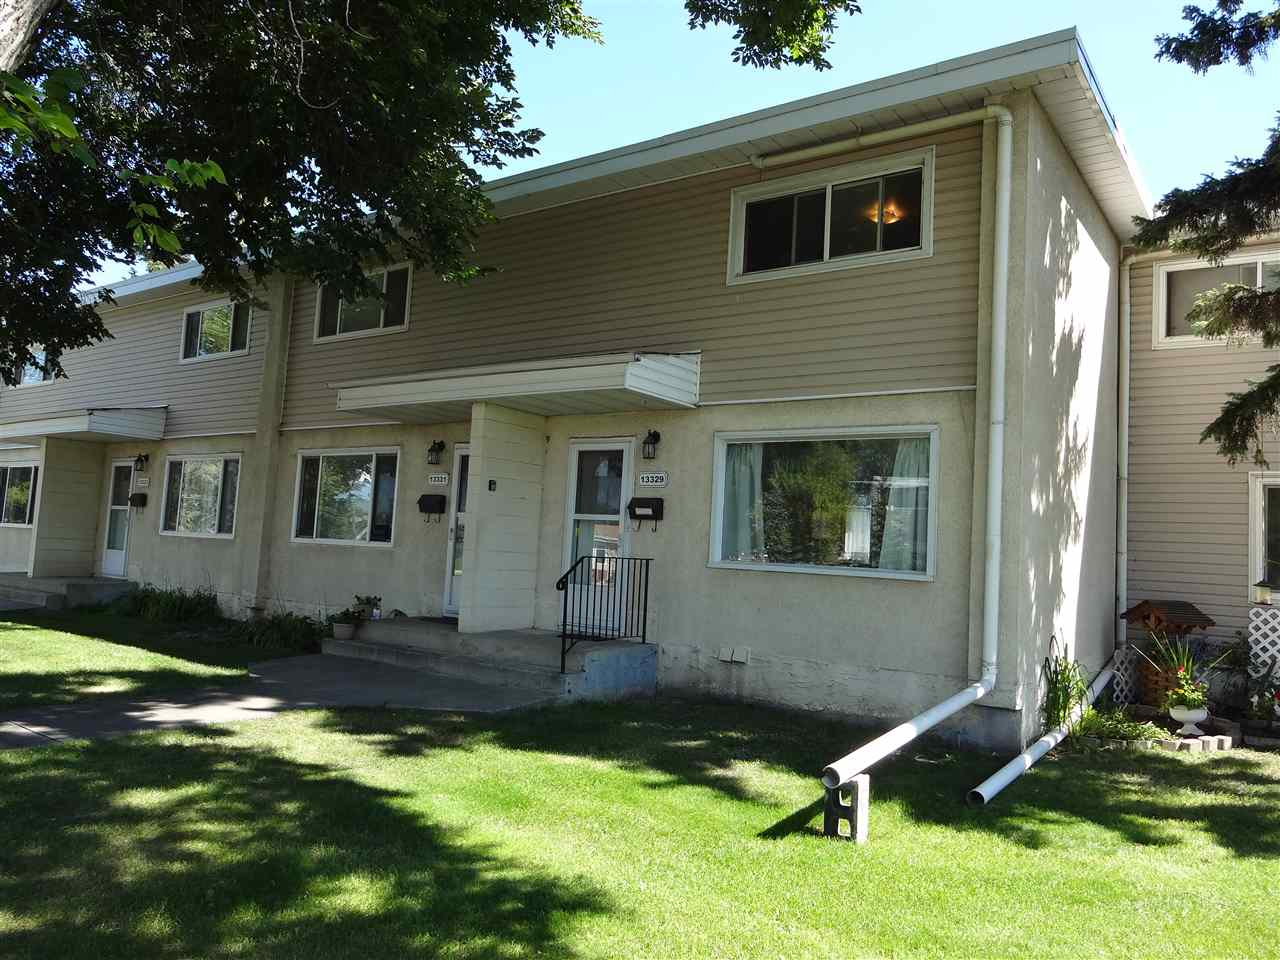 Main Photo: 13329 90 Street in Edmonton: Zone 02 Townhouse for sale : MLS® # E4078739